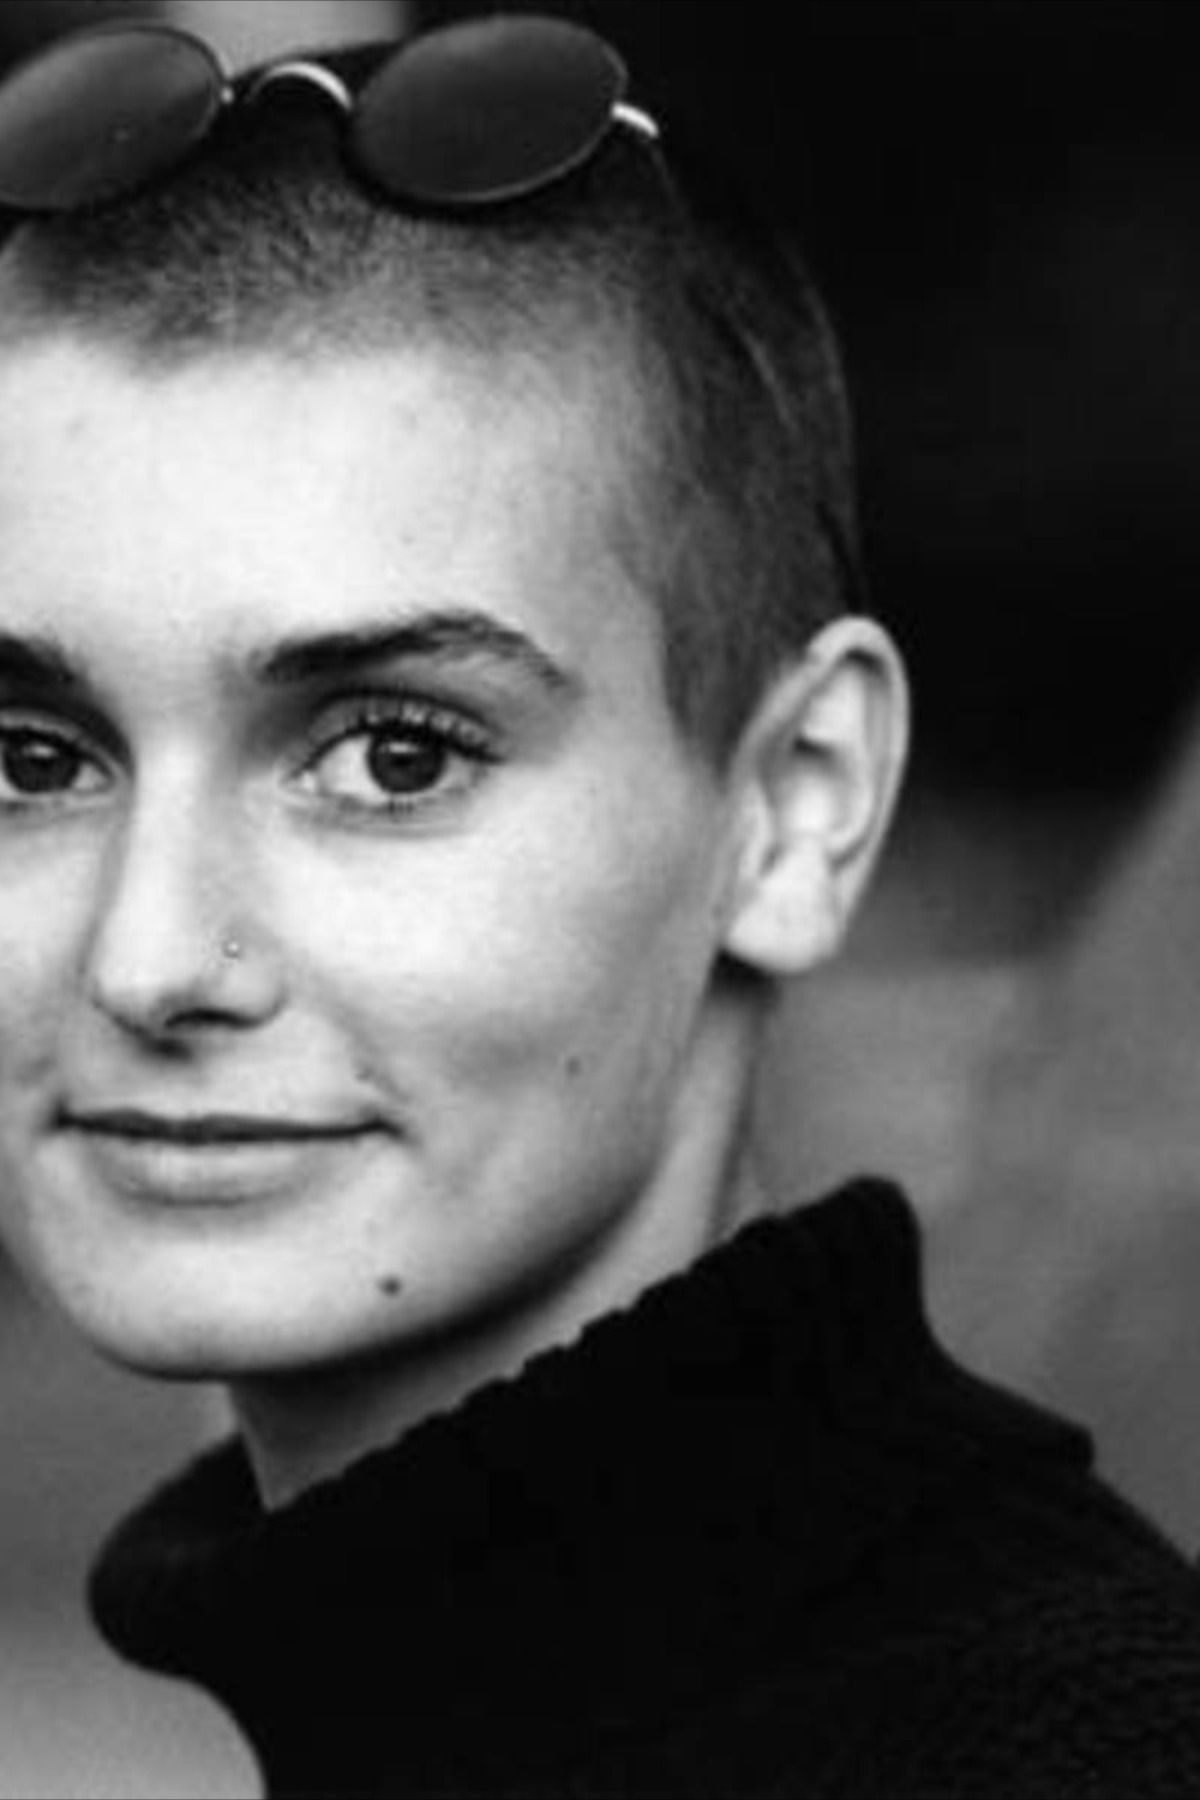 Sinead O Connor Age   Age & Net Worth in 2020   Sinéad o ...